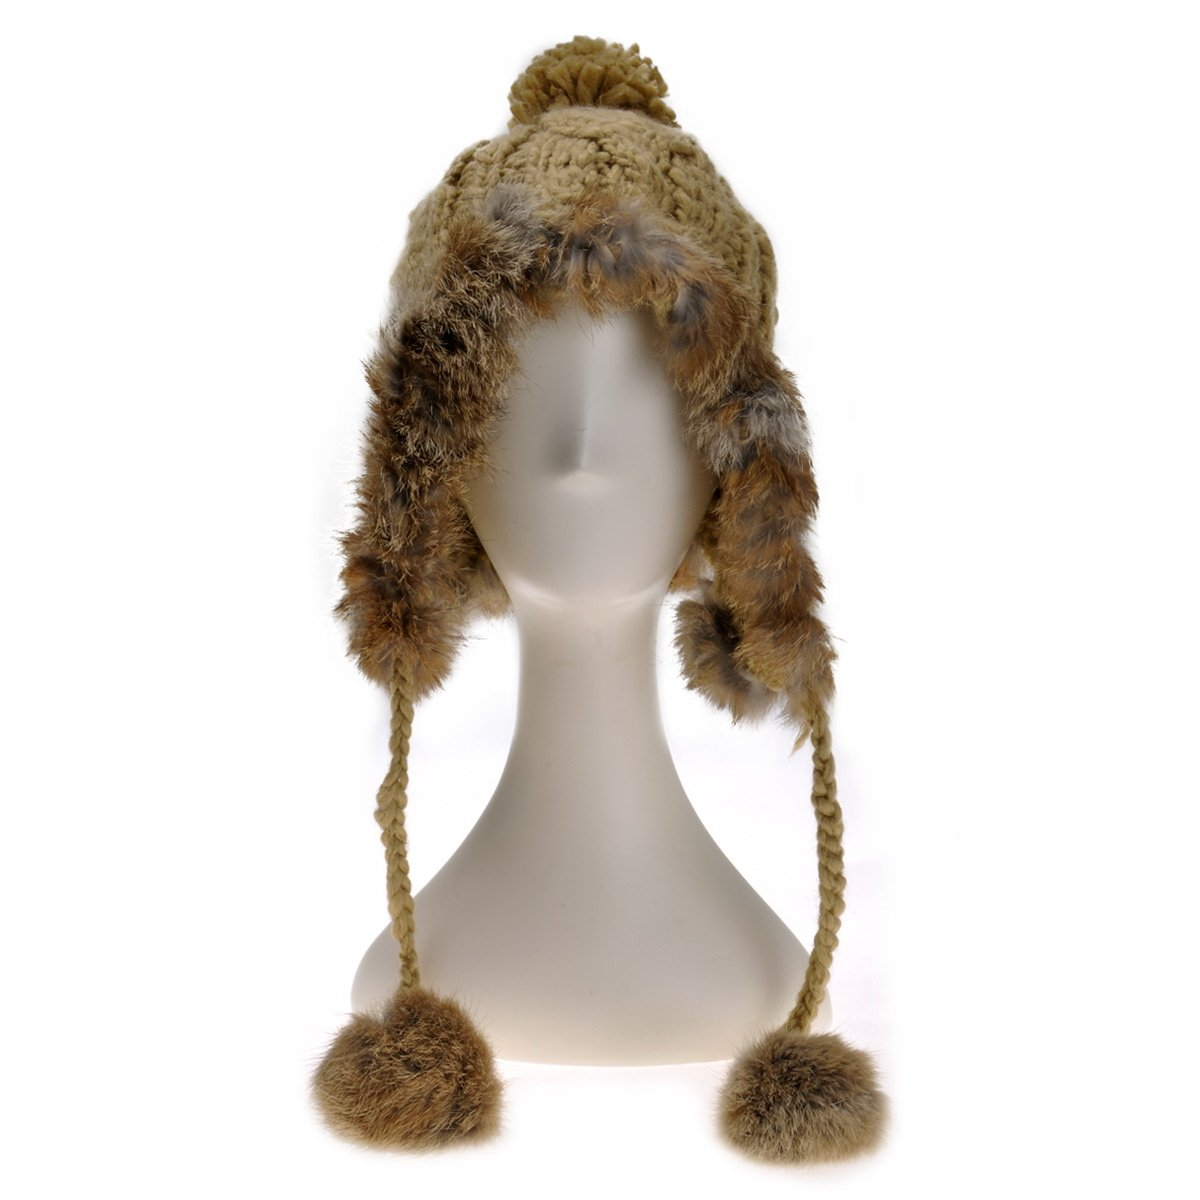 ZLYC Women Fashion Winter Warm Rabbit Fur Knit Bobble Beanie Cap Hat with Earflaps (Brown)